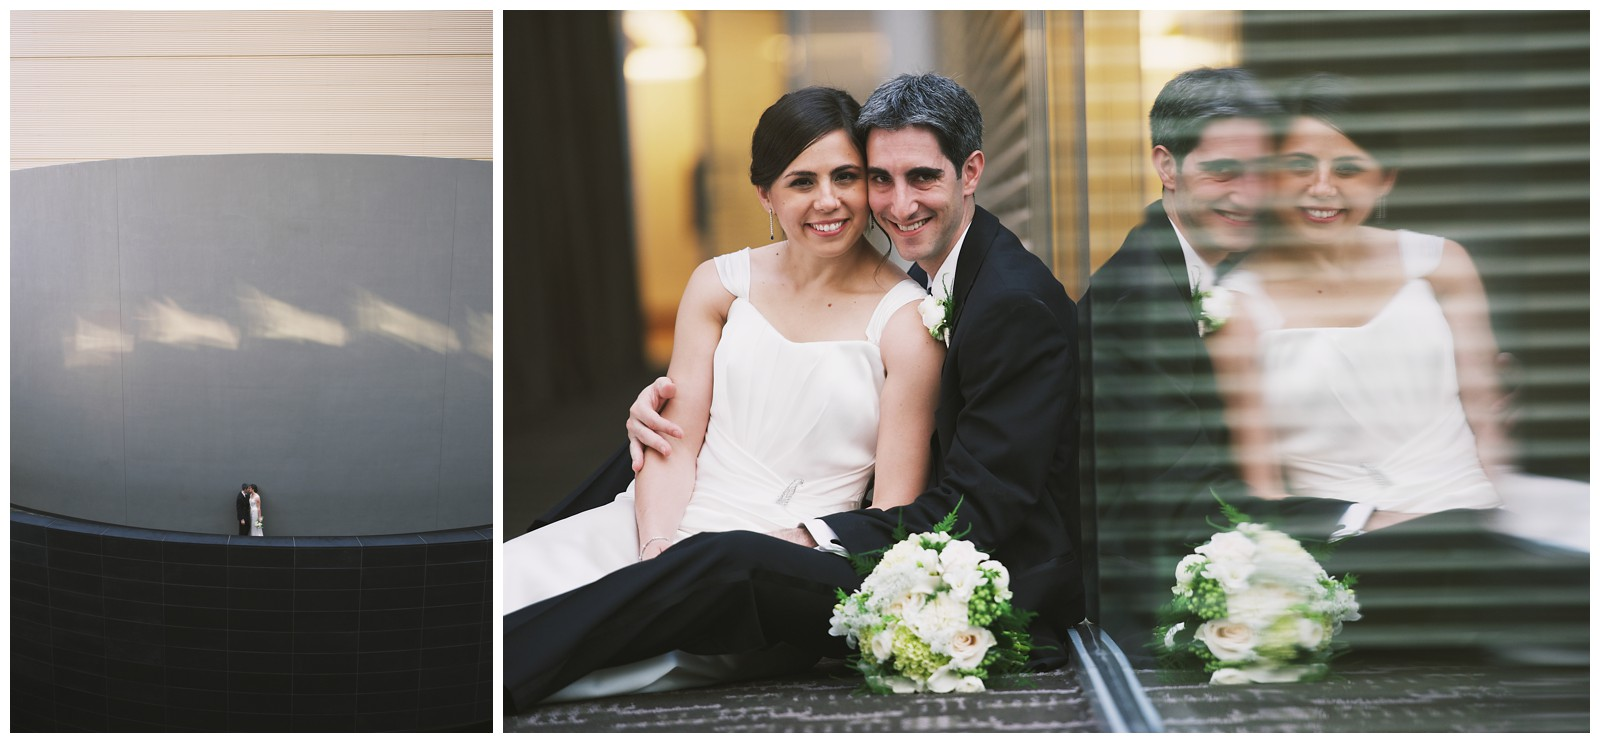 Vanessa and Adam's Wedding at Kimmel Center Philadelphia_0033